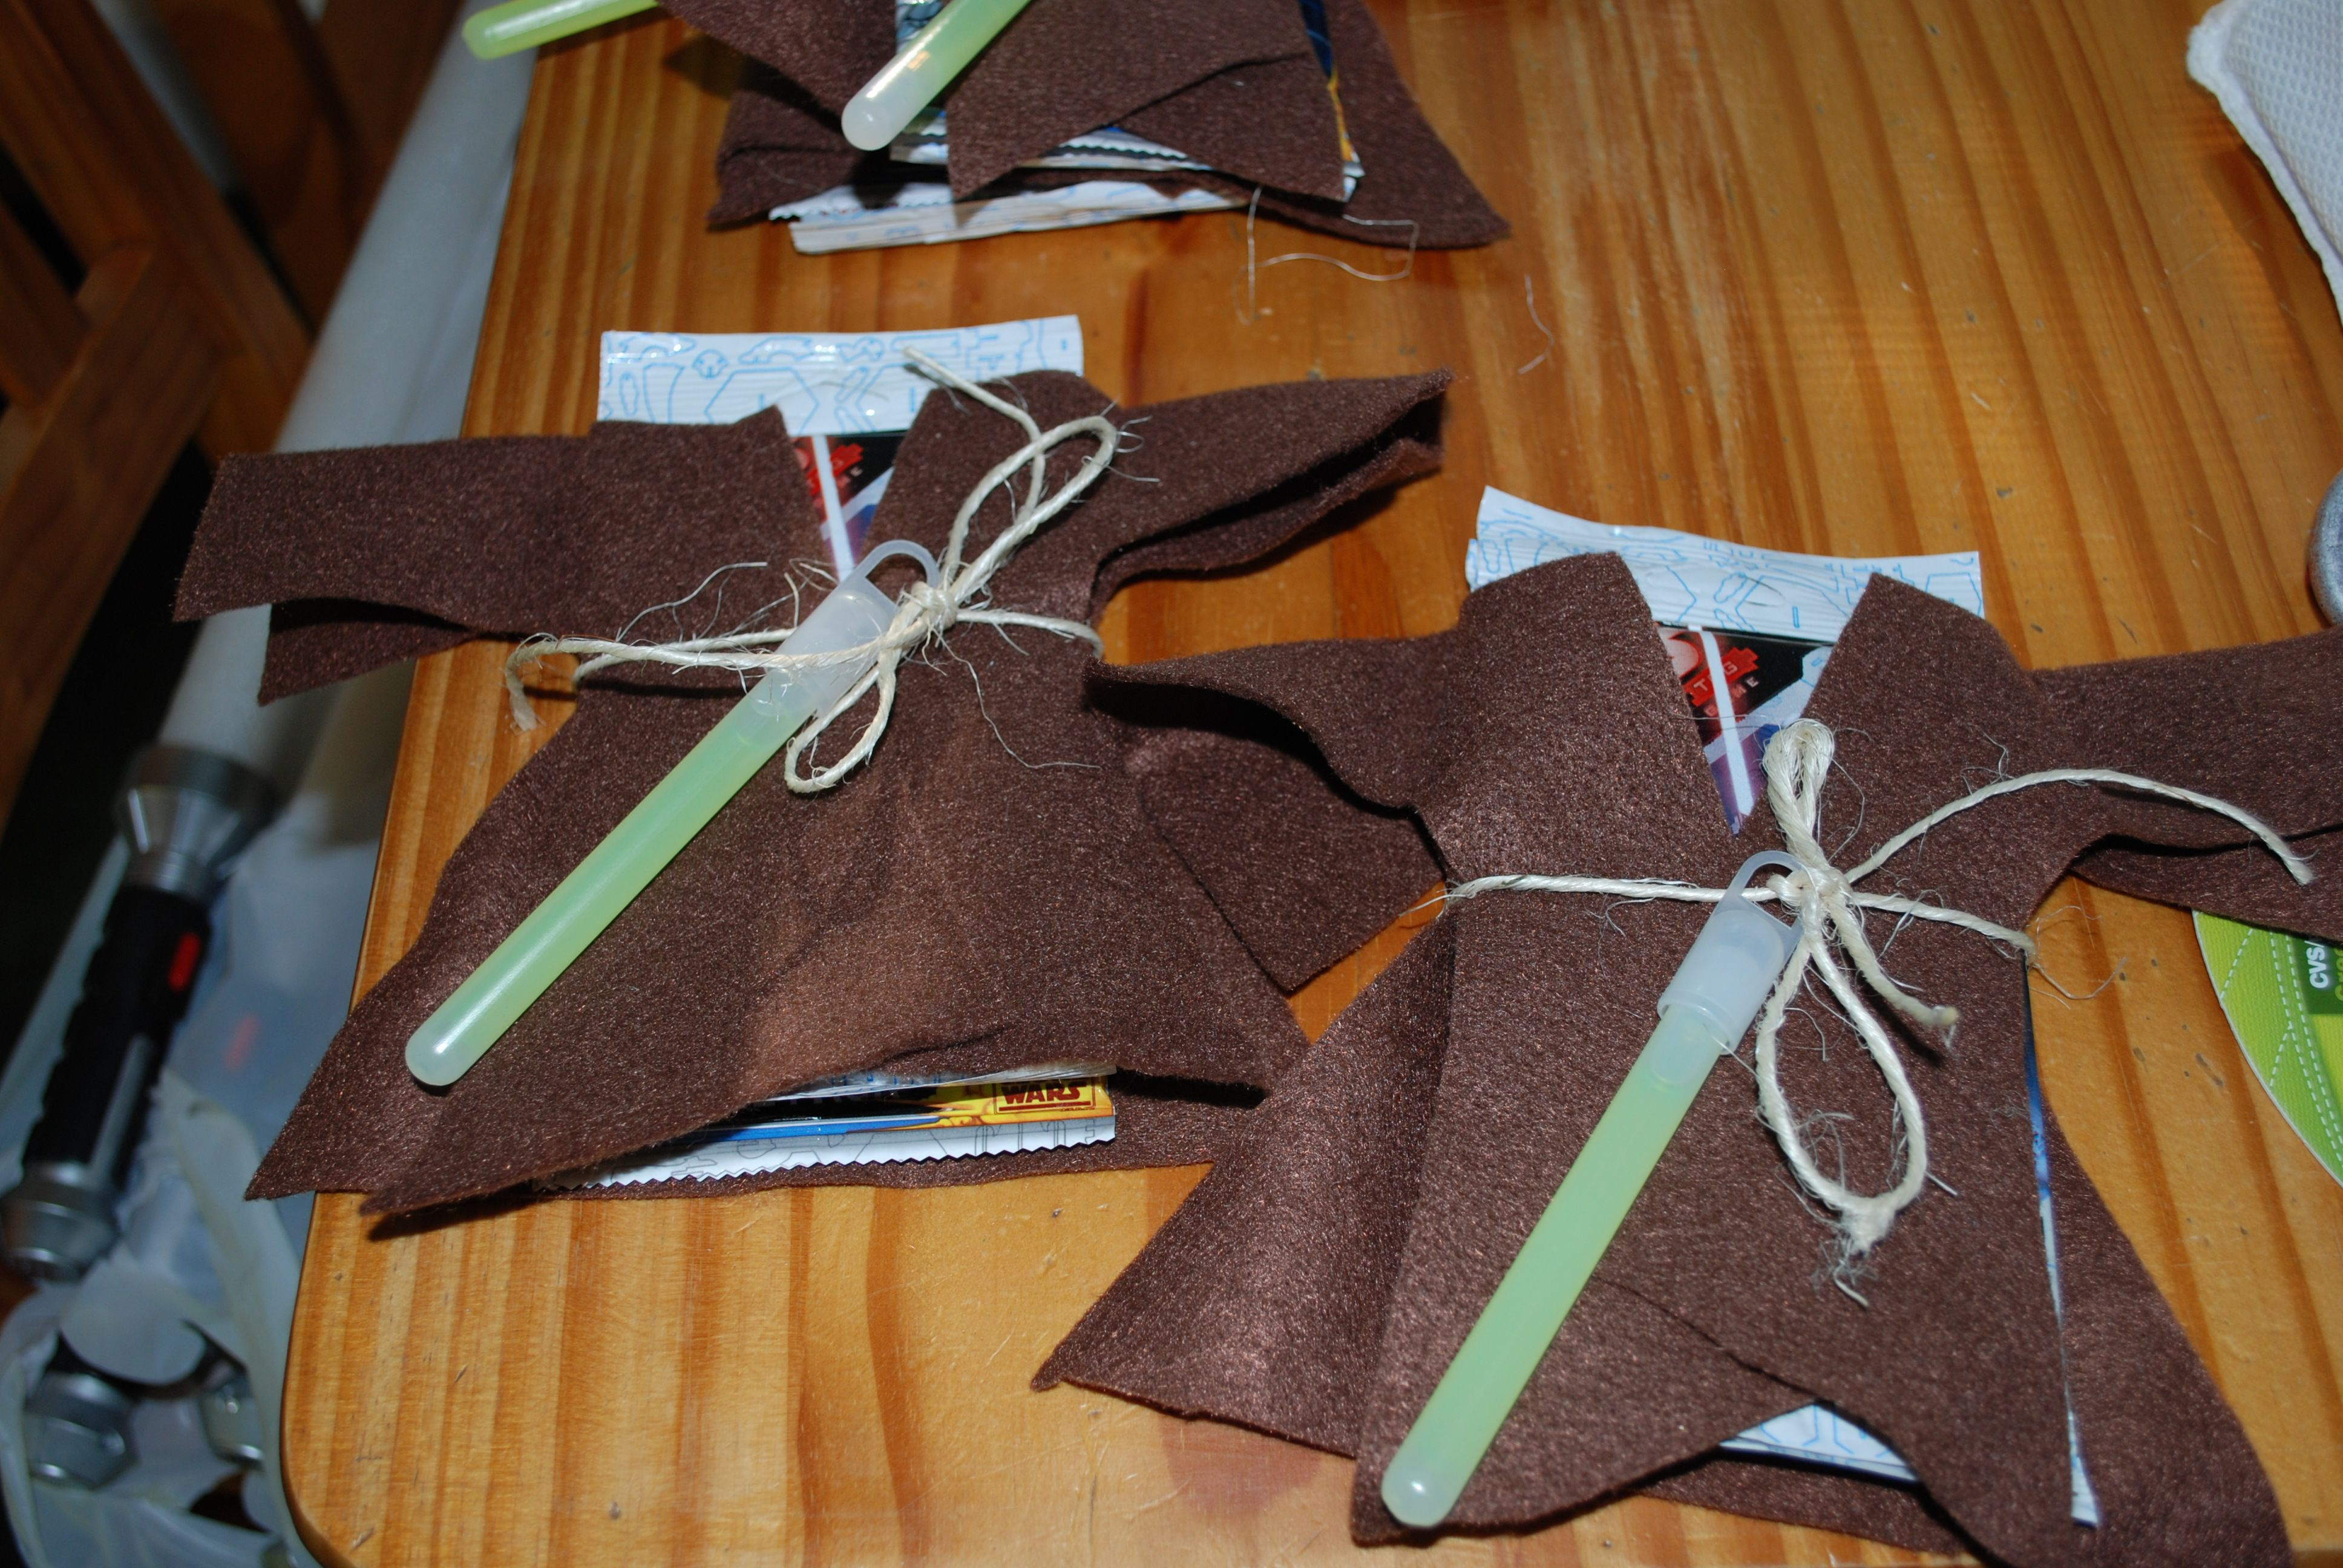 Star Wars Jedi favors.  I found star wars game cards, wrapped them in easy to make mini jedi robes made of felt, tied with kitchen twine, and added a lightsaber glowstick.